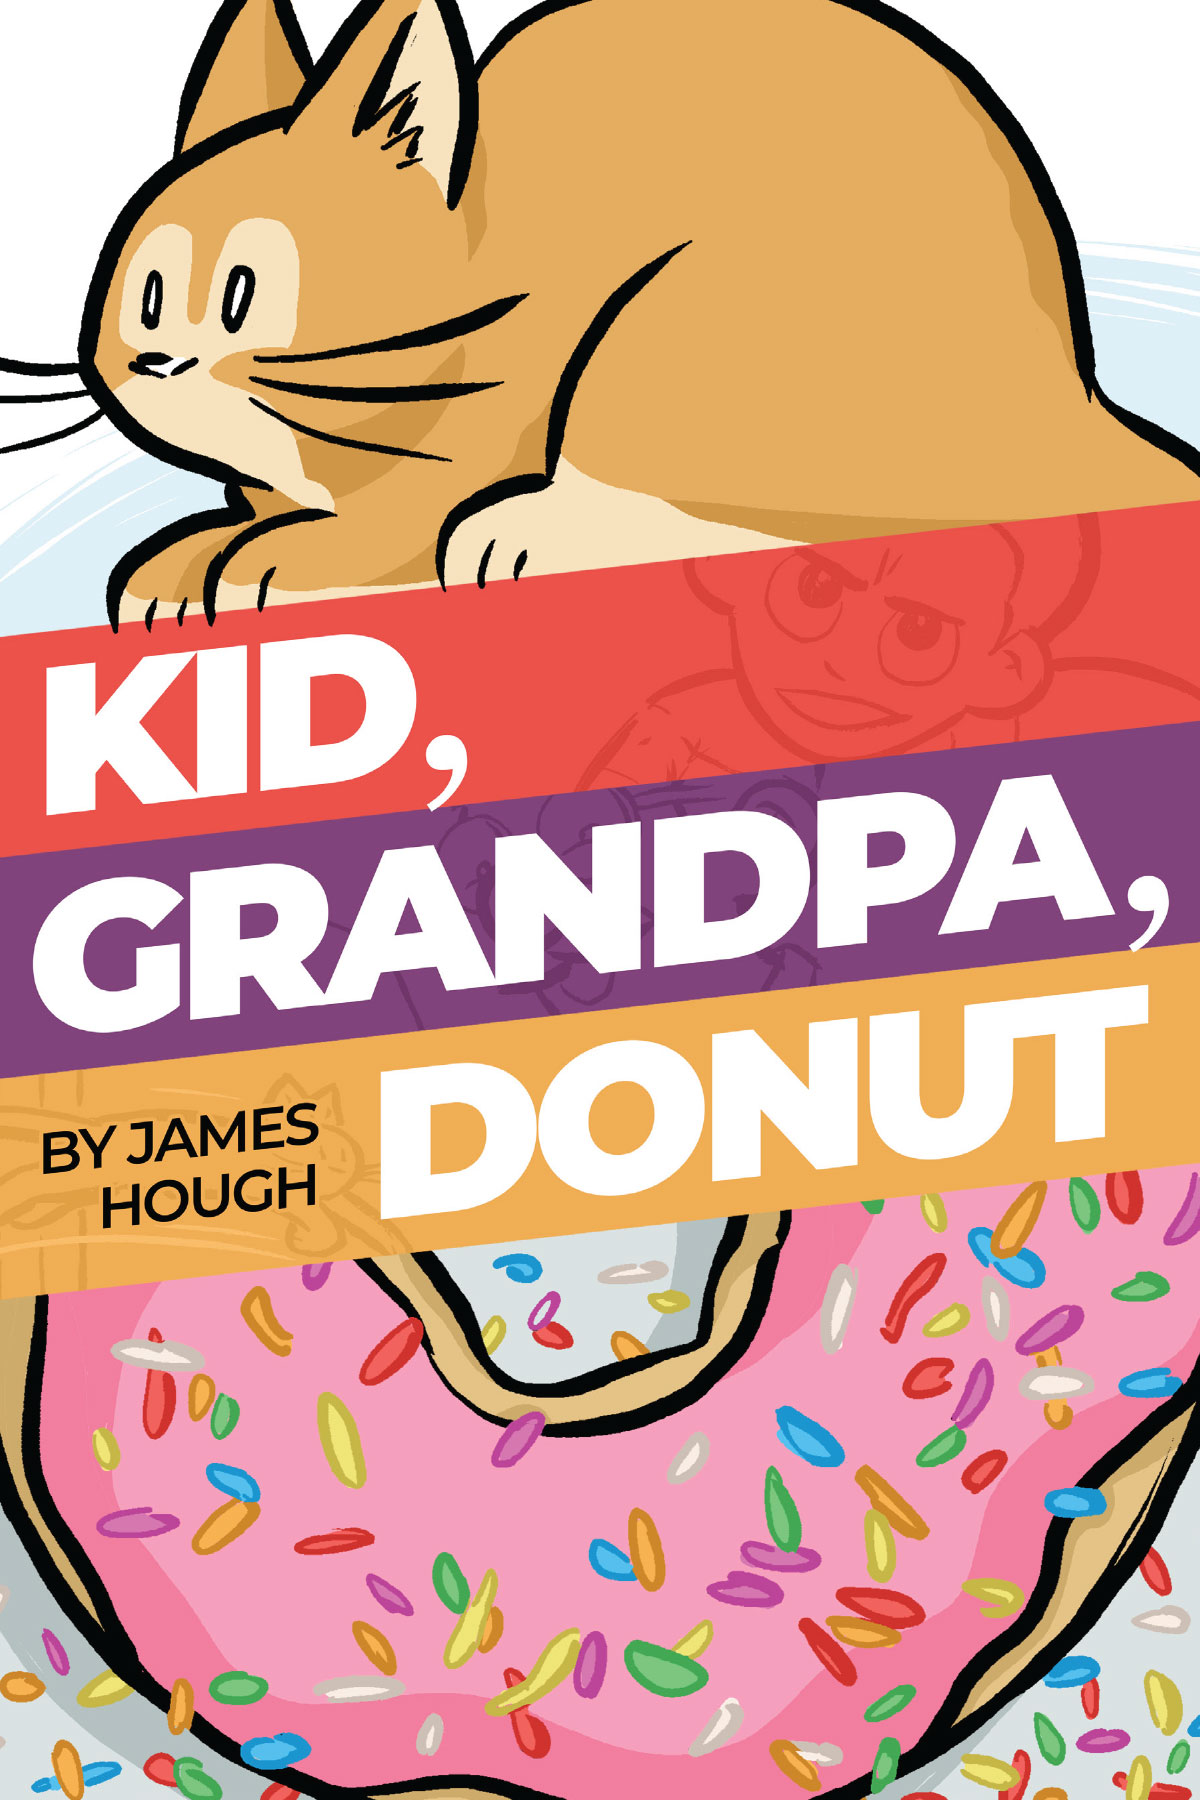 Kid, Grandpa, Donut book cover